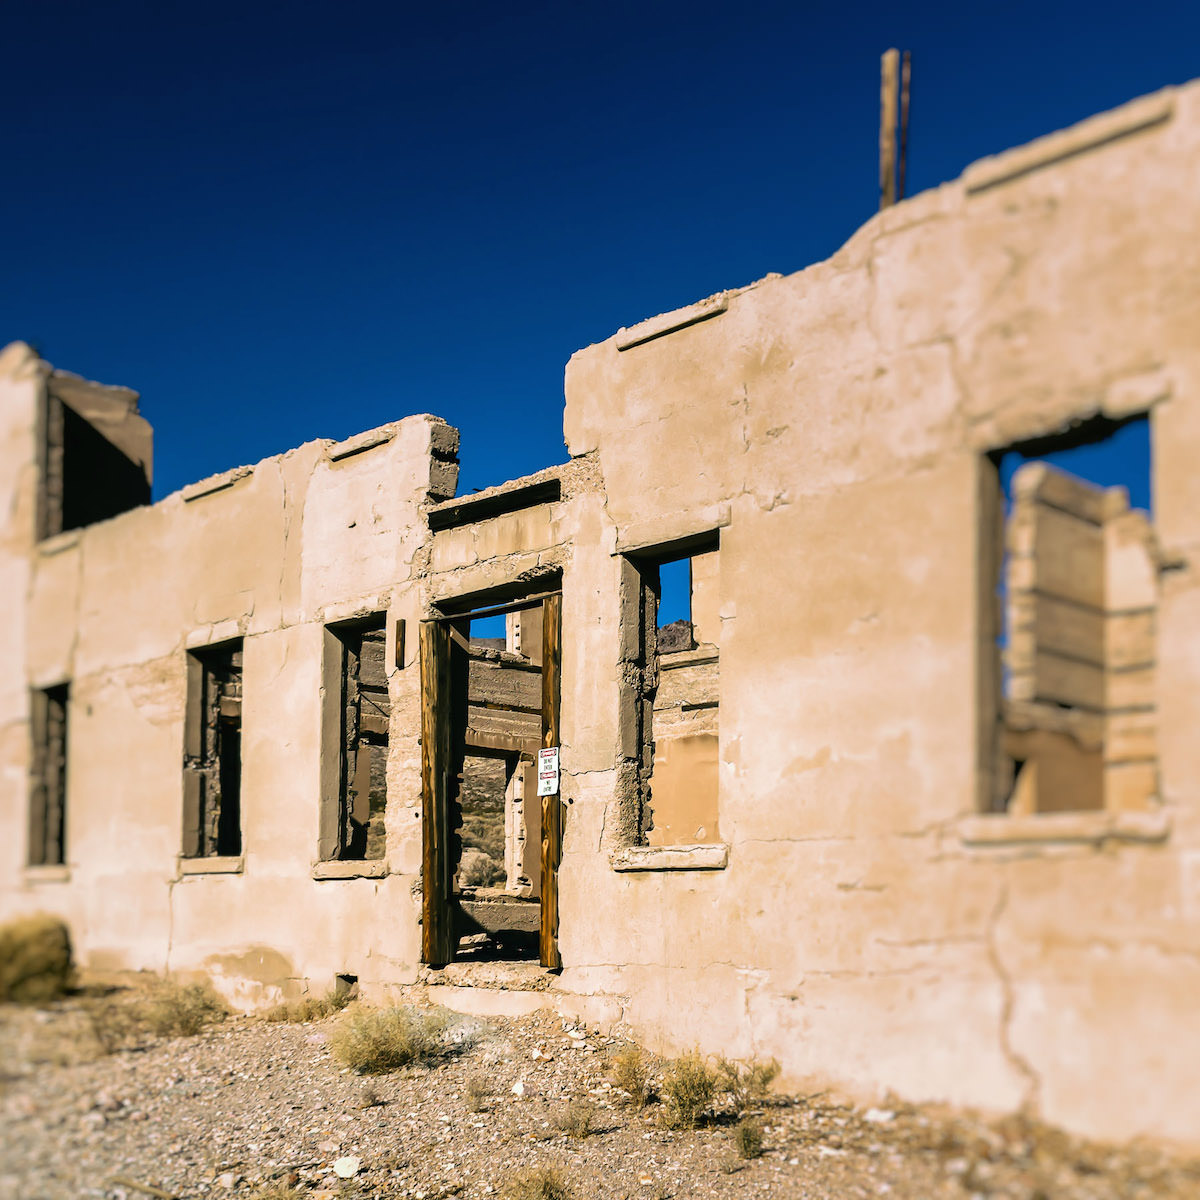 Deserted, crumbling ruins in the ghost town of Rhyolite, Nevada.